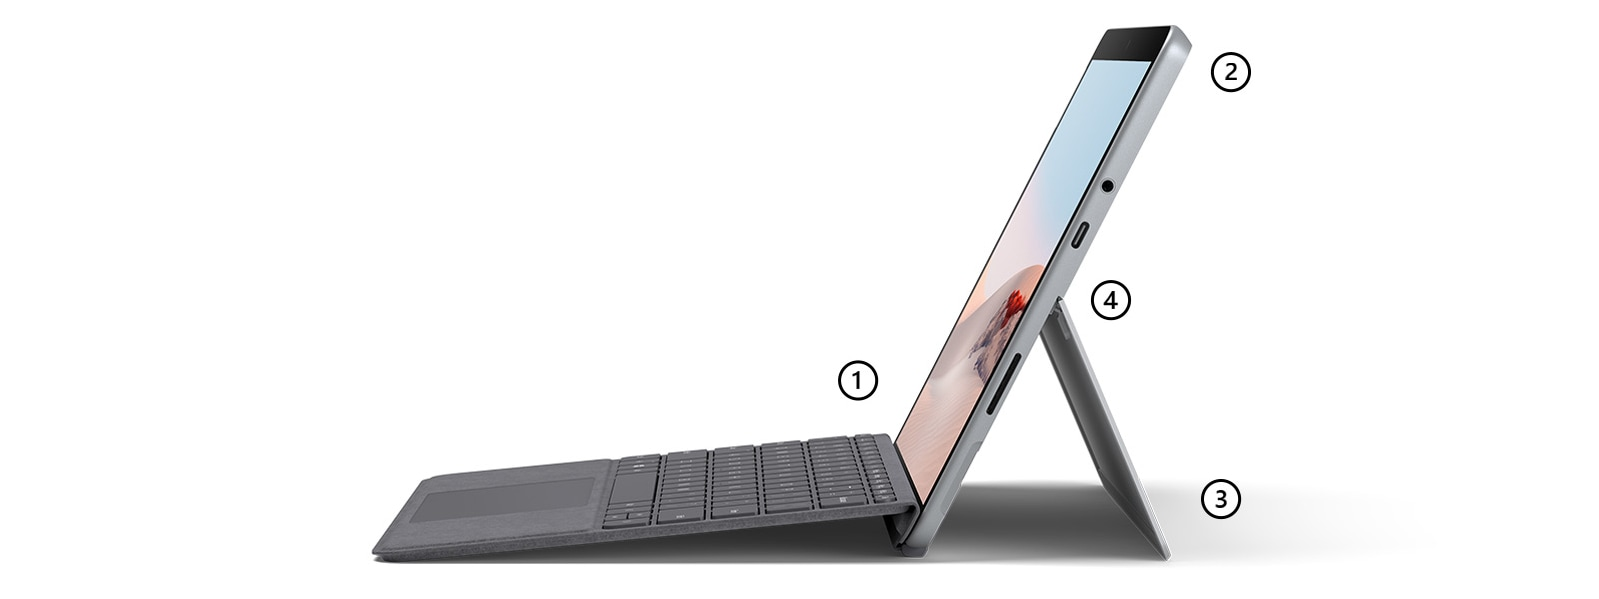 Surface Go 2 in Laptop Mode with Surface Go Signature Type Cover in Platinum with points highlighting the pen-enabled touchscreen, Microphones and camera, kickstand, and USB-C port